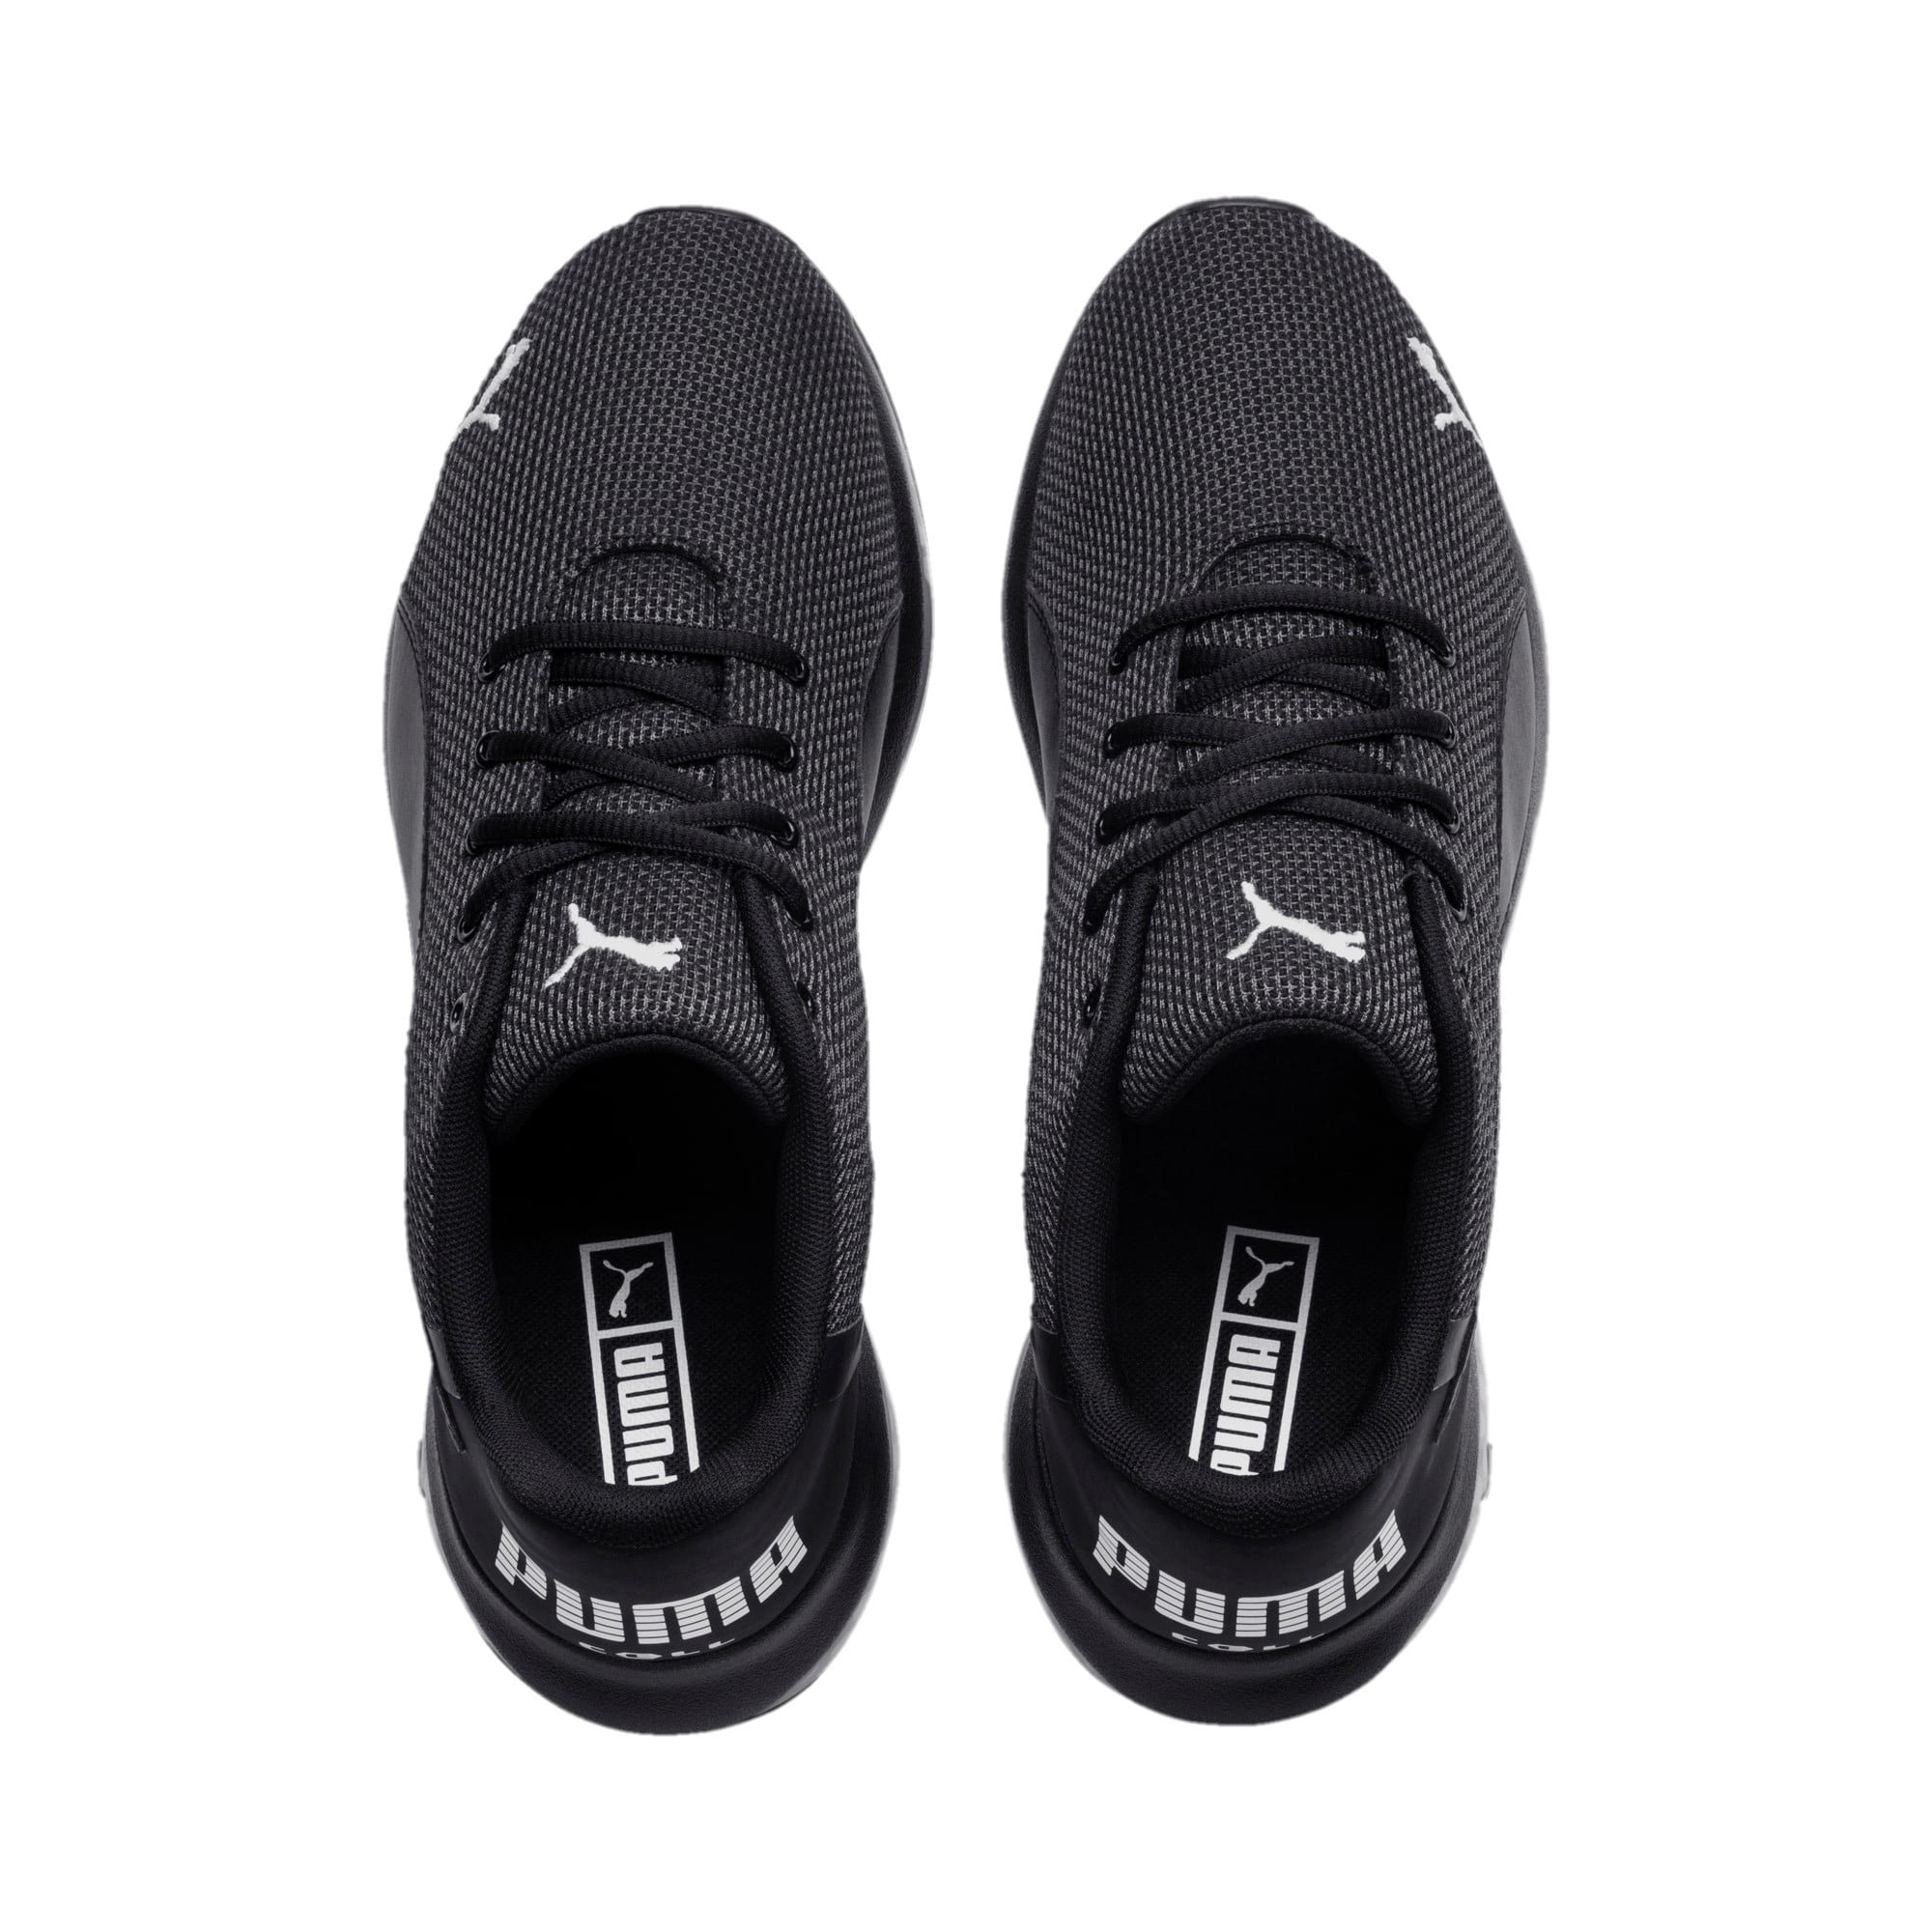 Thumbnail 6 of Cell Ultimate Point Knitted Men's Running Shoes, Puma Black-Puma White, medium-IND